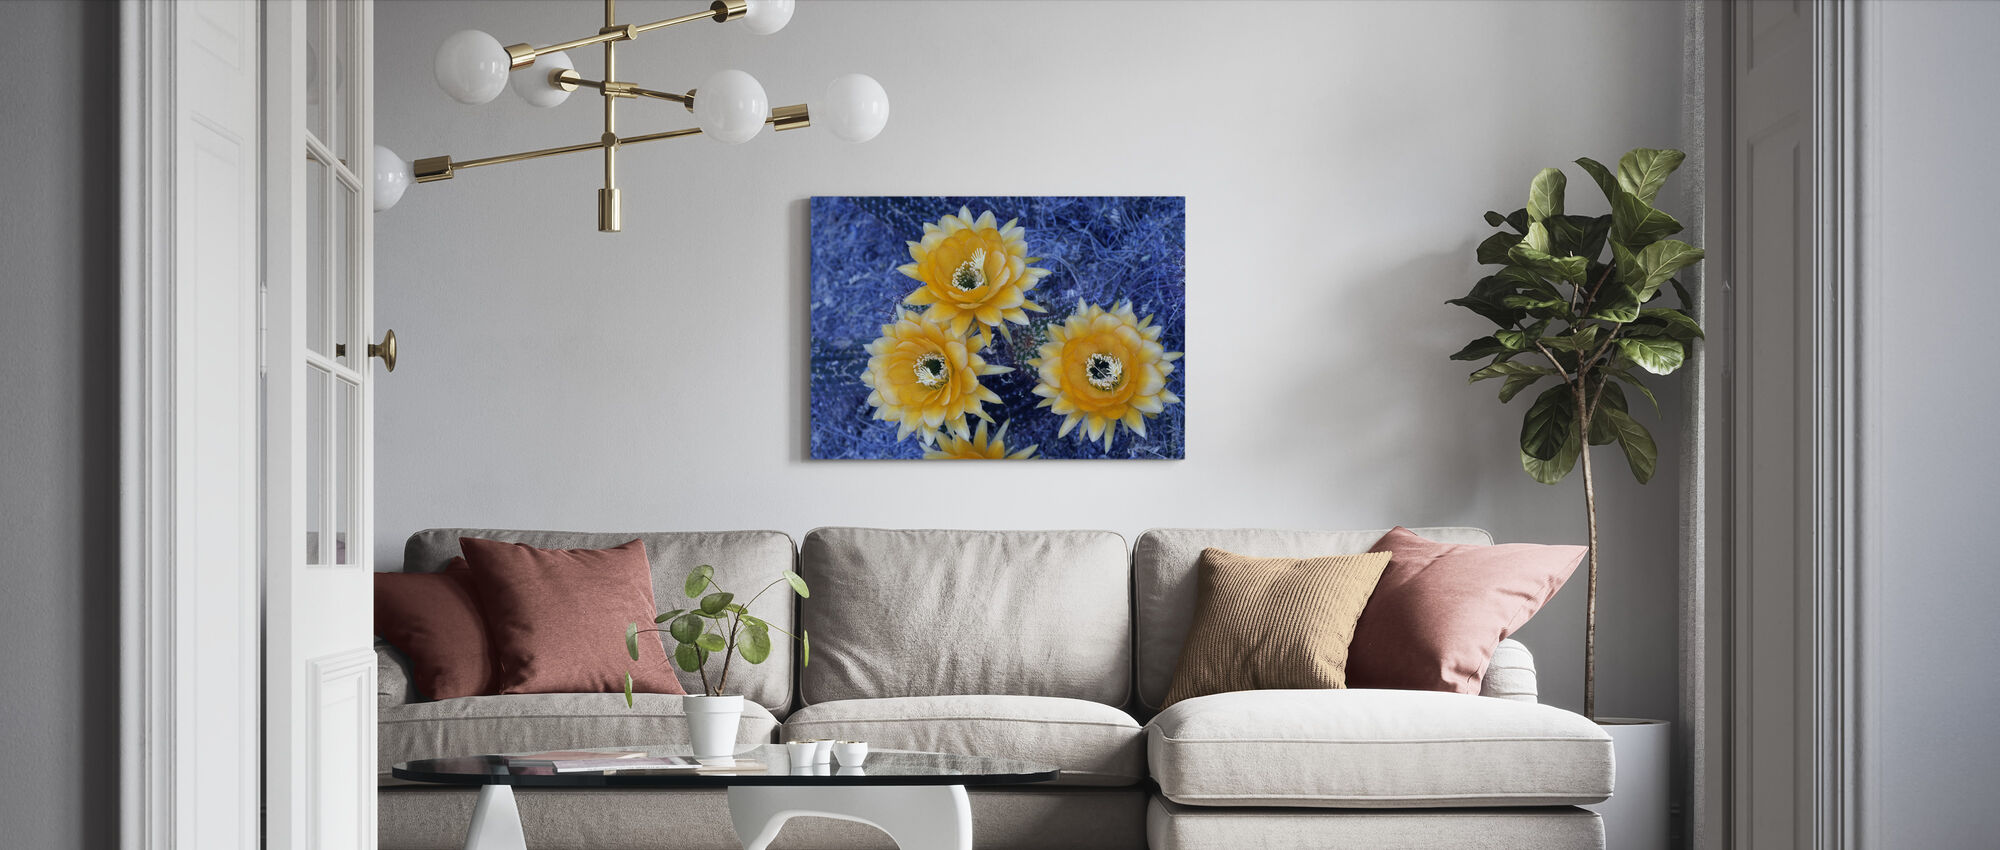 Blooming Trichocereus Cactus - Canvas print - Living Room